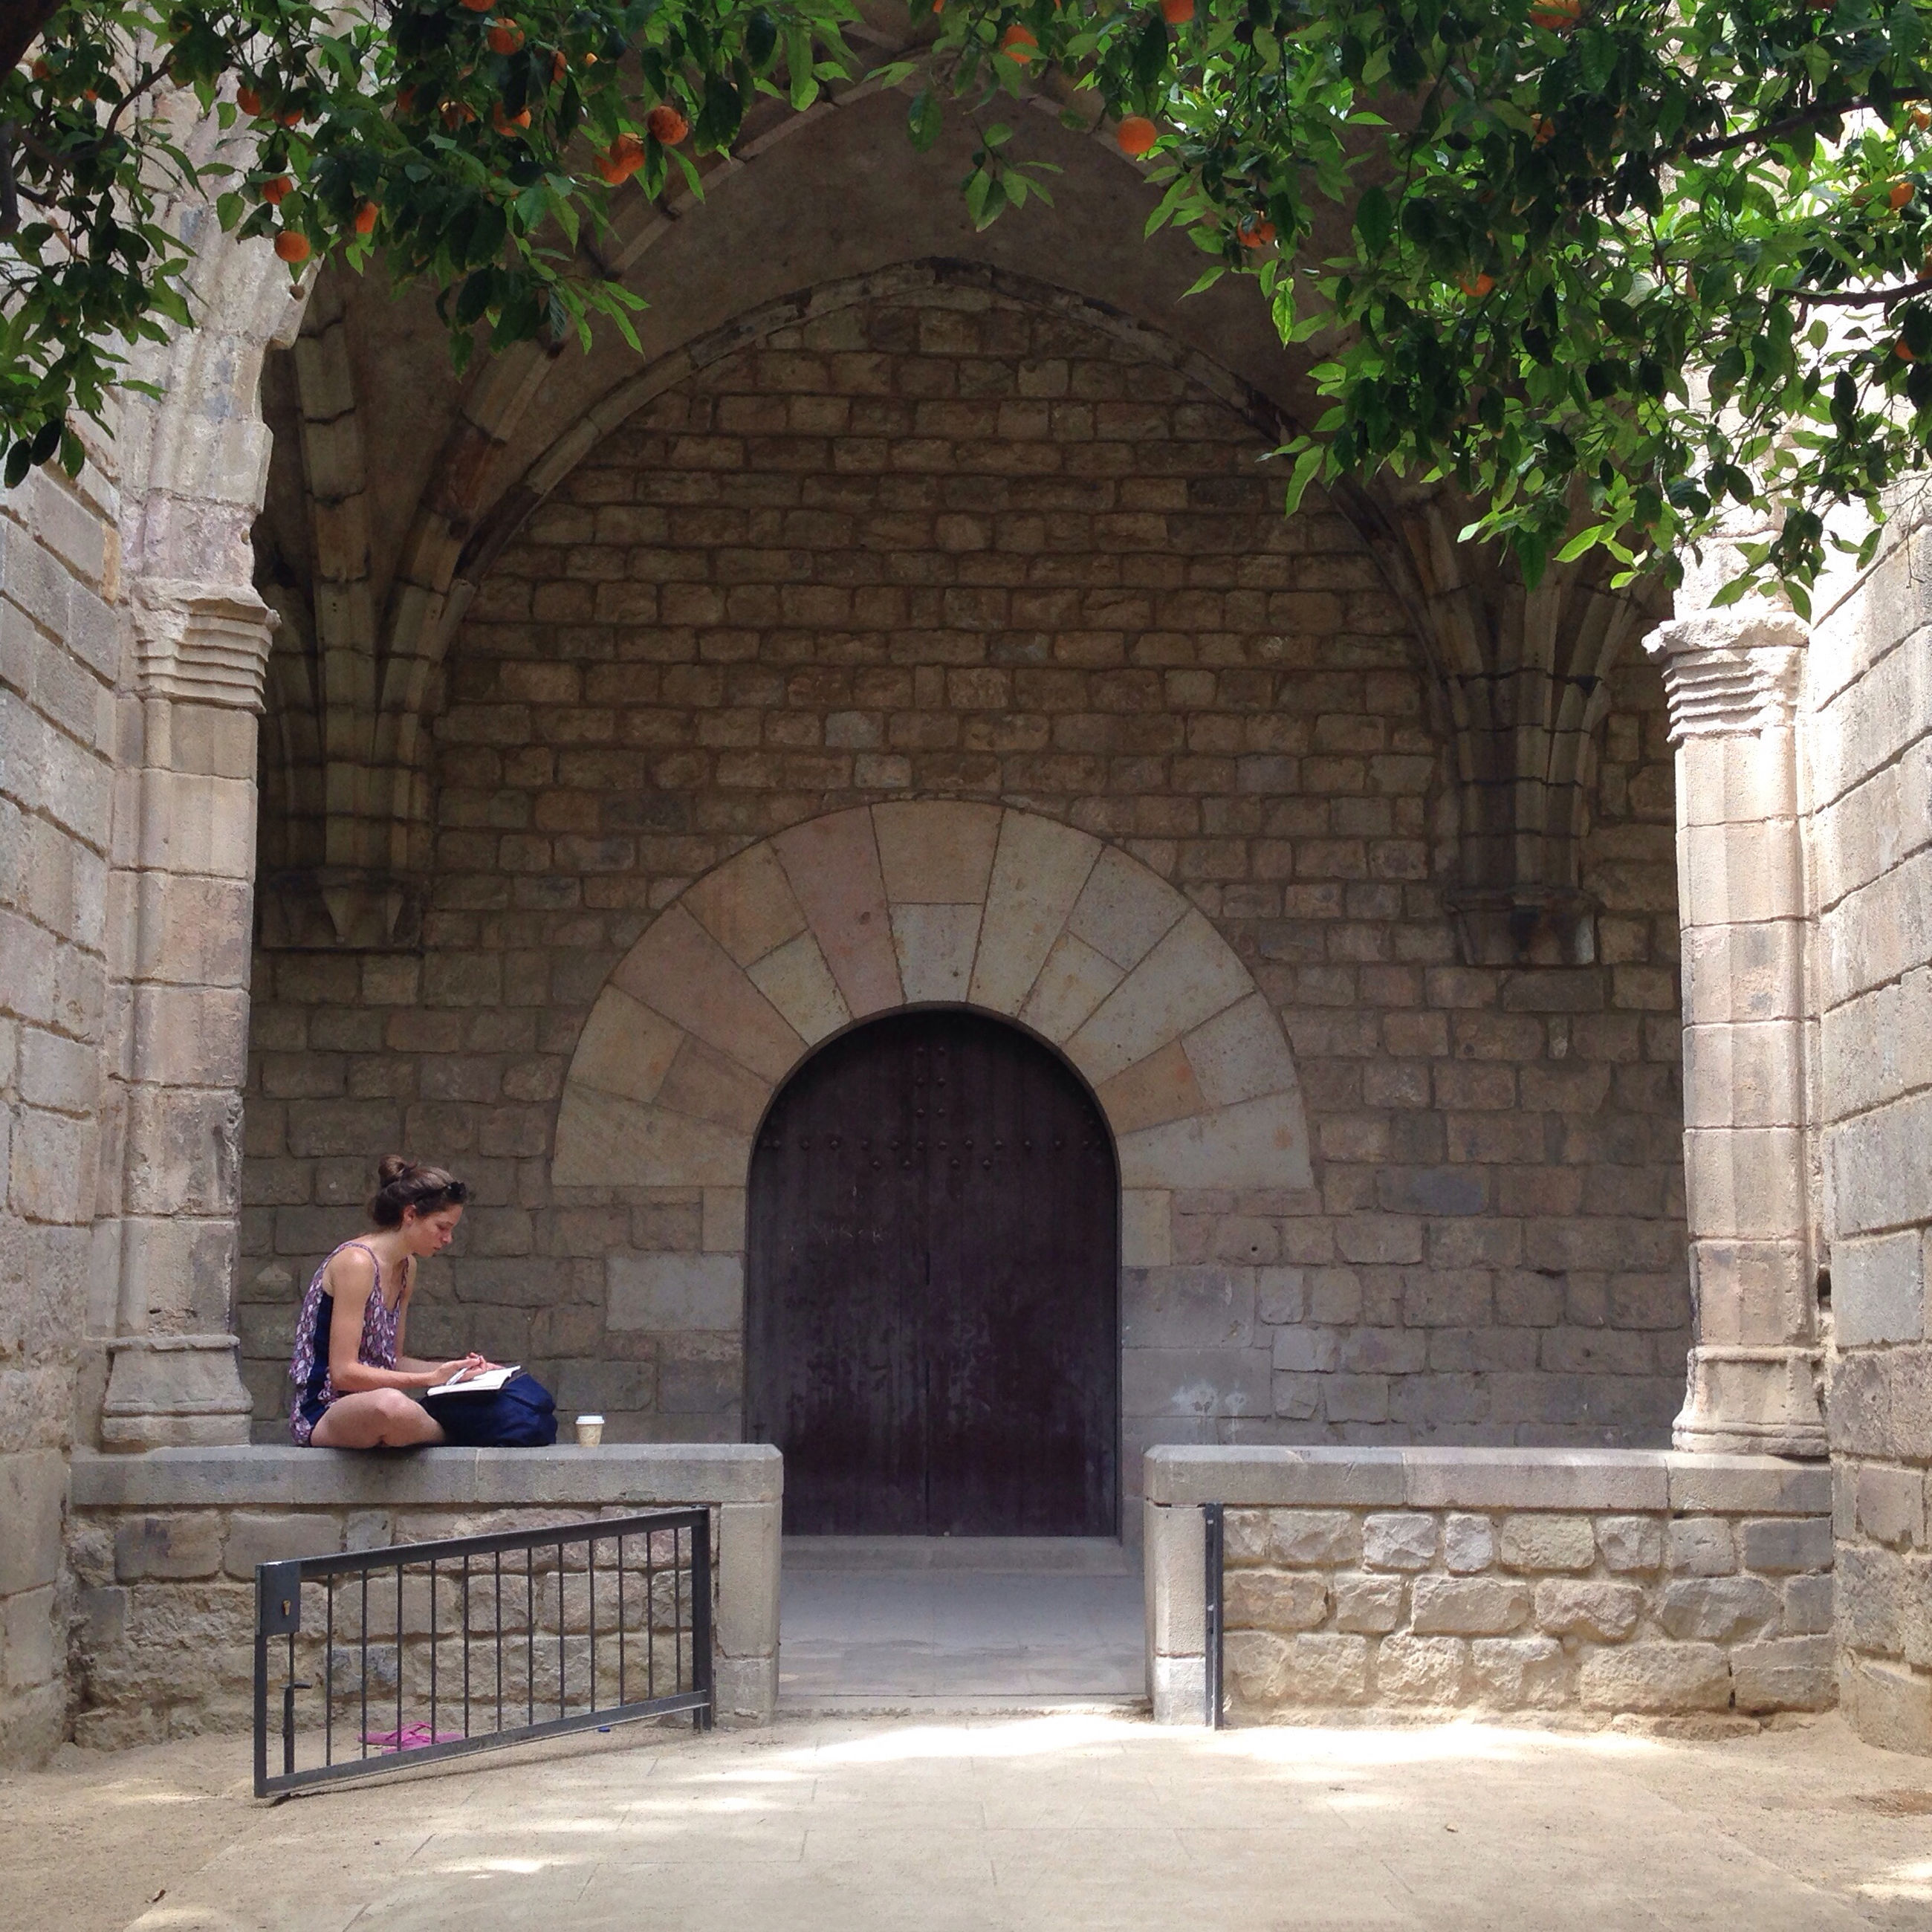 architecture, built structure, arch, building exterior, lifestyles, entrance, leisure activity, person, full length, steps, men, sitting, stone wall, cobblestone, day, rear view, history